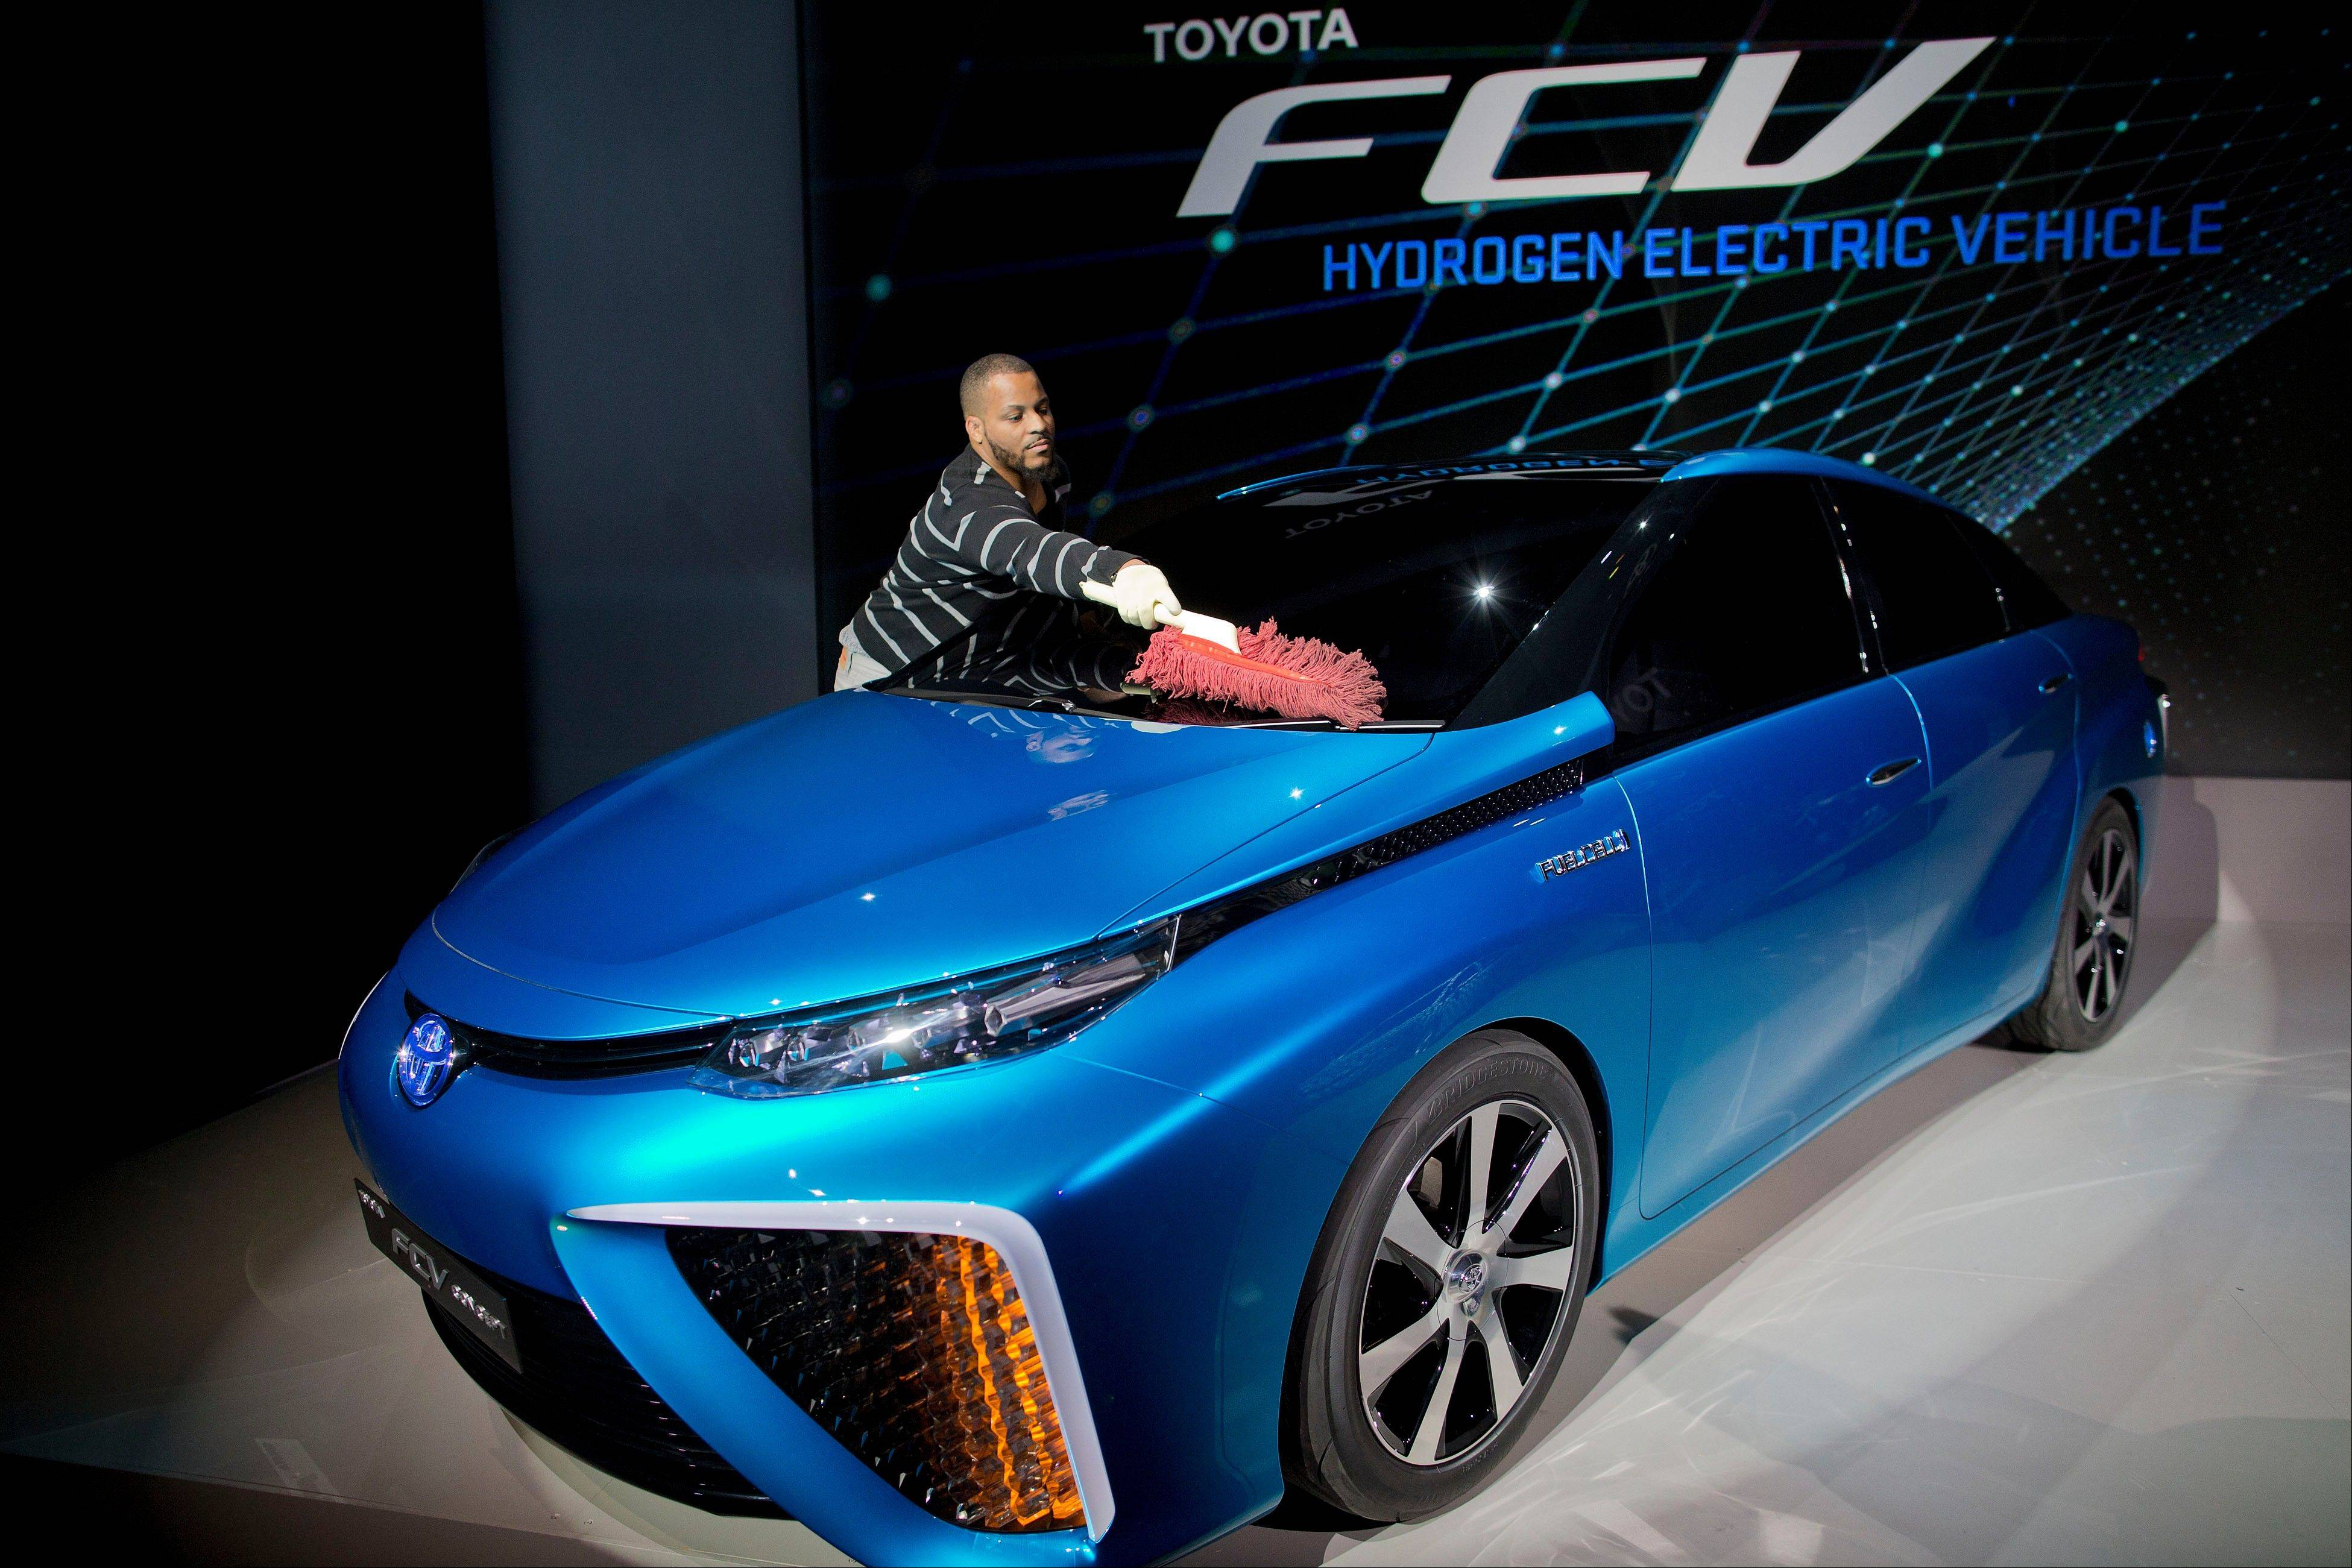 A production crew member dusts off Toyota�s FCV hydrogen electric concept car during the International Consumer Electronics Show n Las Vegas. Toyota announced the car would be available to consumers in 2015.